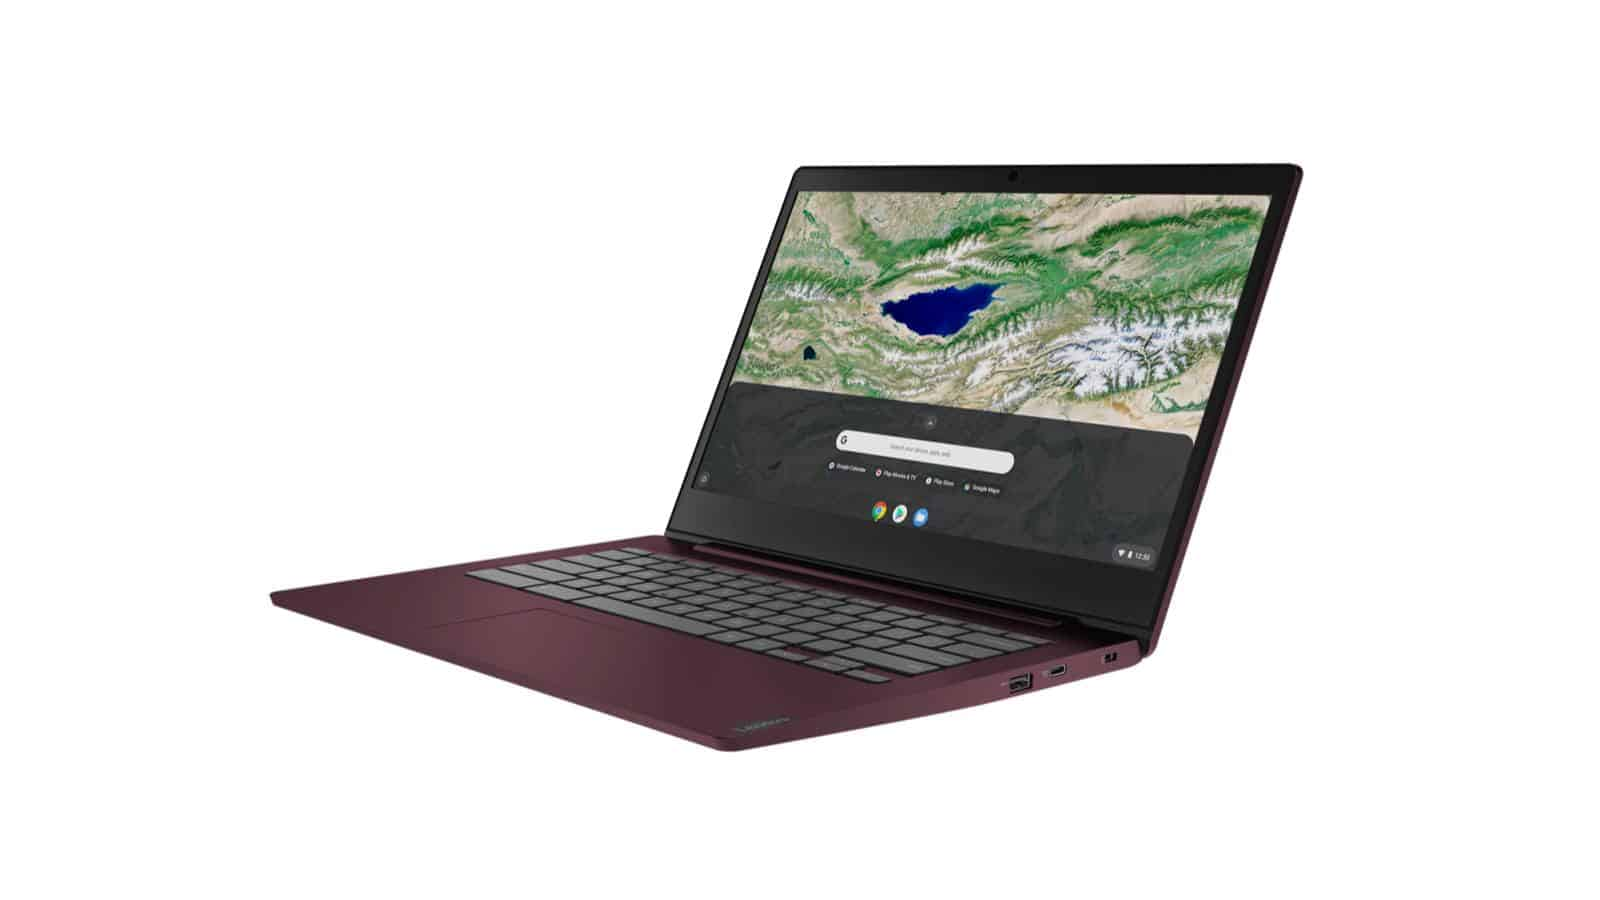 06 03 Chromebook S340 14 Dark Orchid Front Facing Left